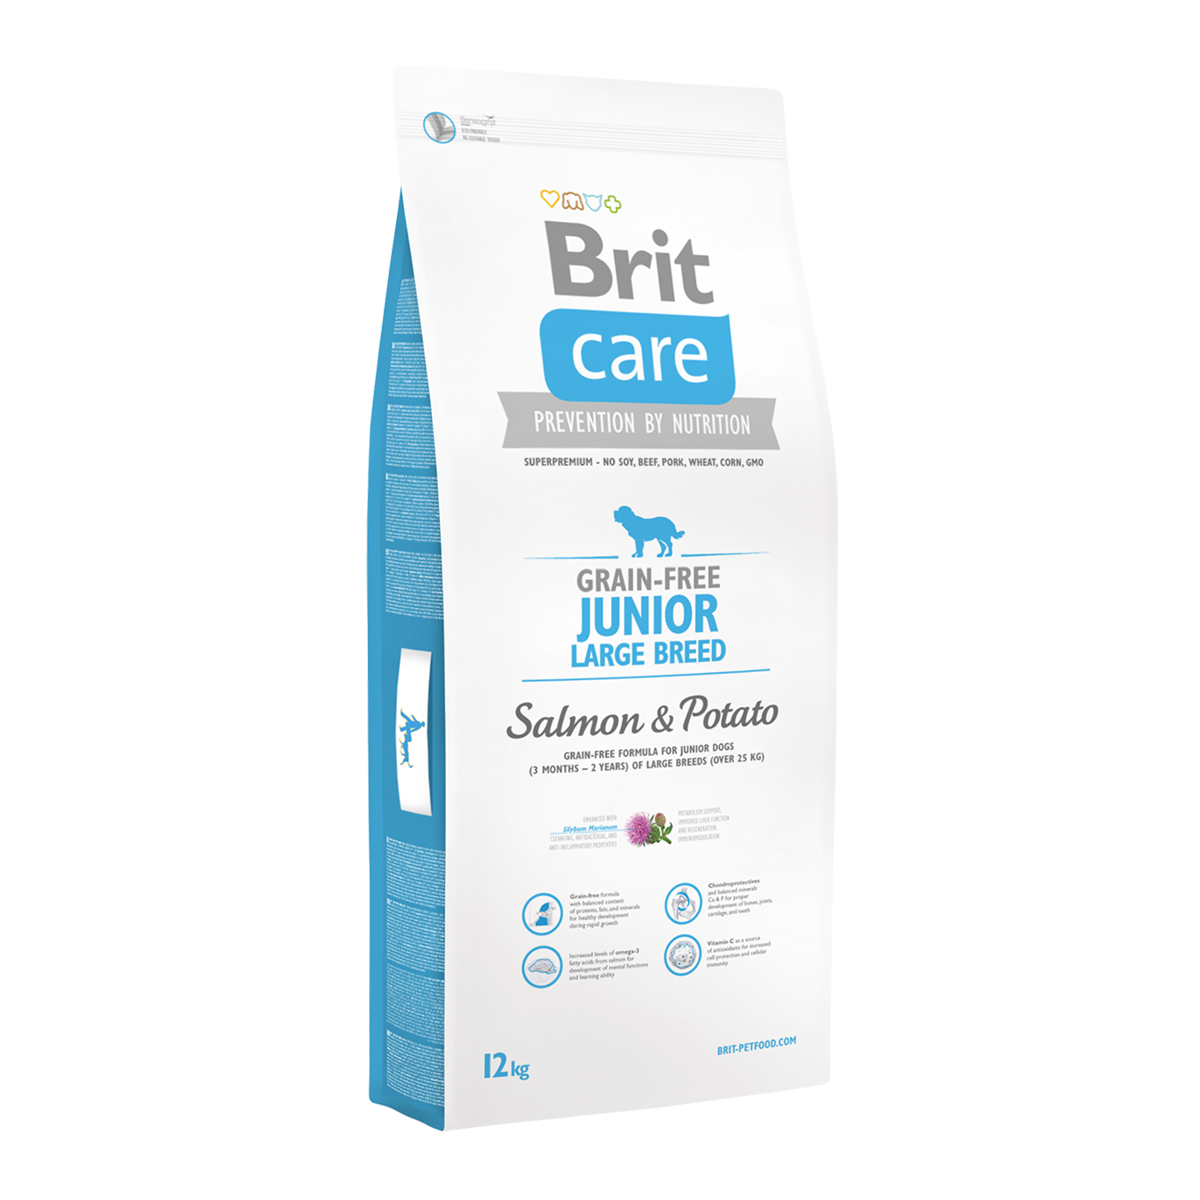 Корм для собак Brit Care Grain-free Junior Large Breed Salmon & Potato, 12 кг